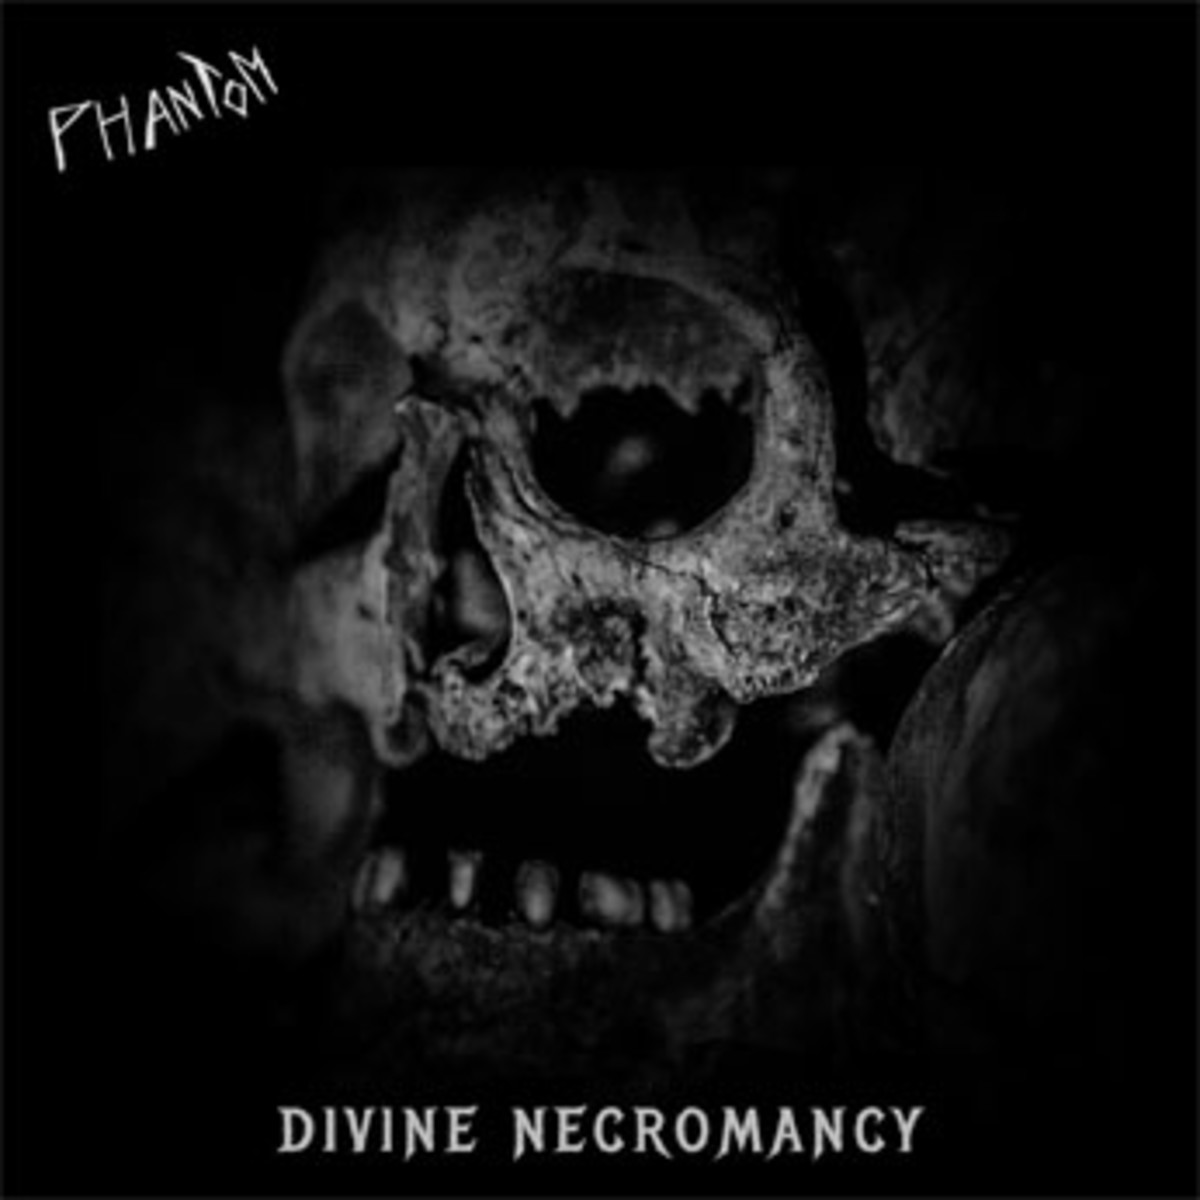 Phantom - Divine Necromancy